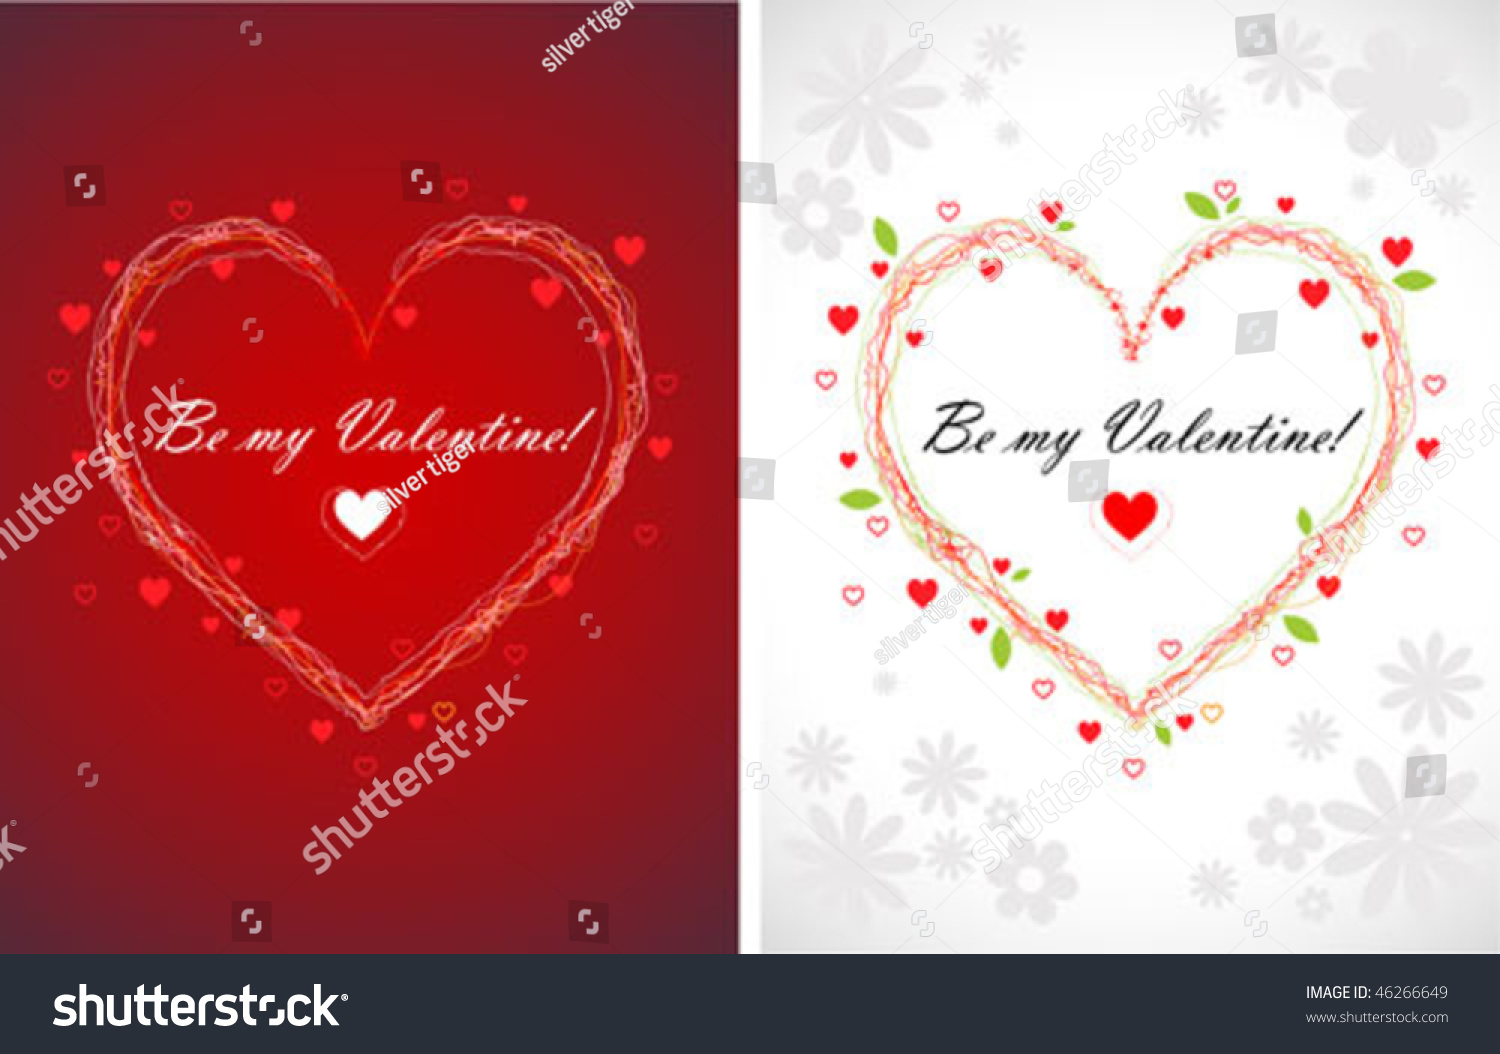 Swirly valentines hearts greeting cards backgrounds stock vector swirly valentines hearts greeting cards backgrounds letter sized paper proportion m4hsunfo Images